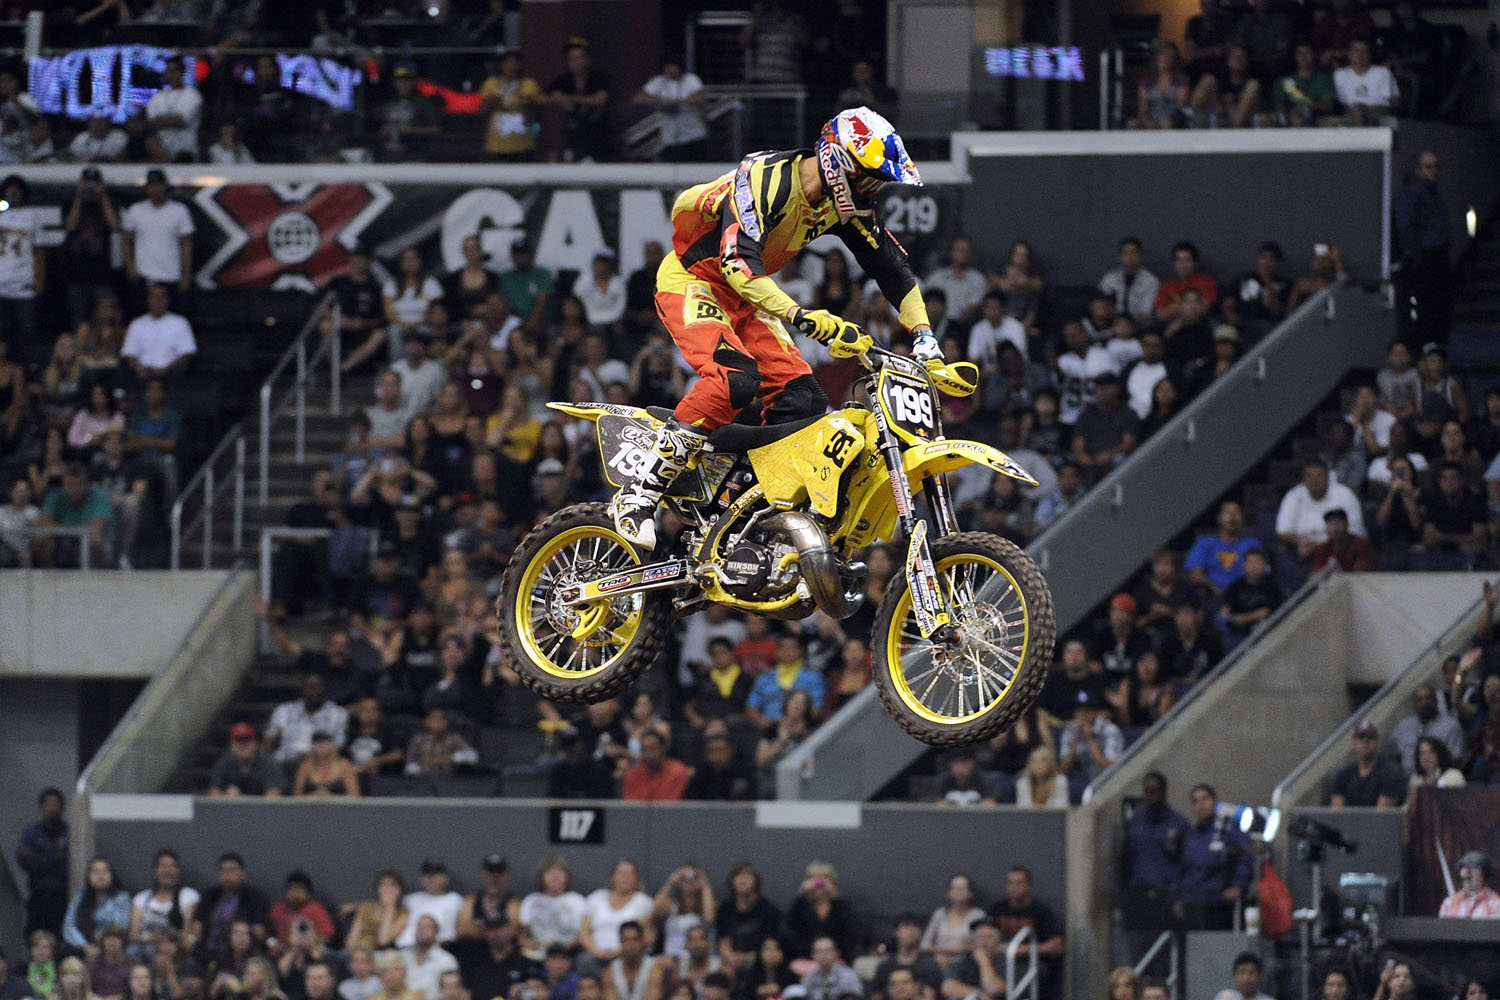 Travis Pastrana competes for gold in the Moto X Speed and Style Final during X Games 16 at Staples Center on August 1, 2010 in Los Angeles, California.